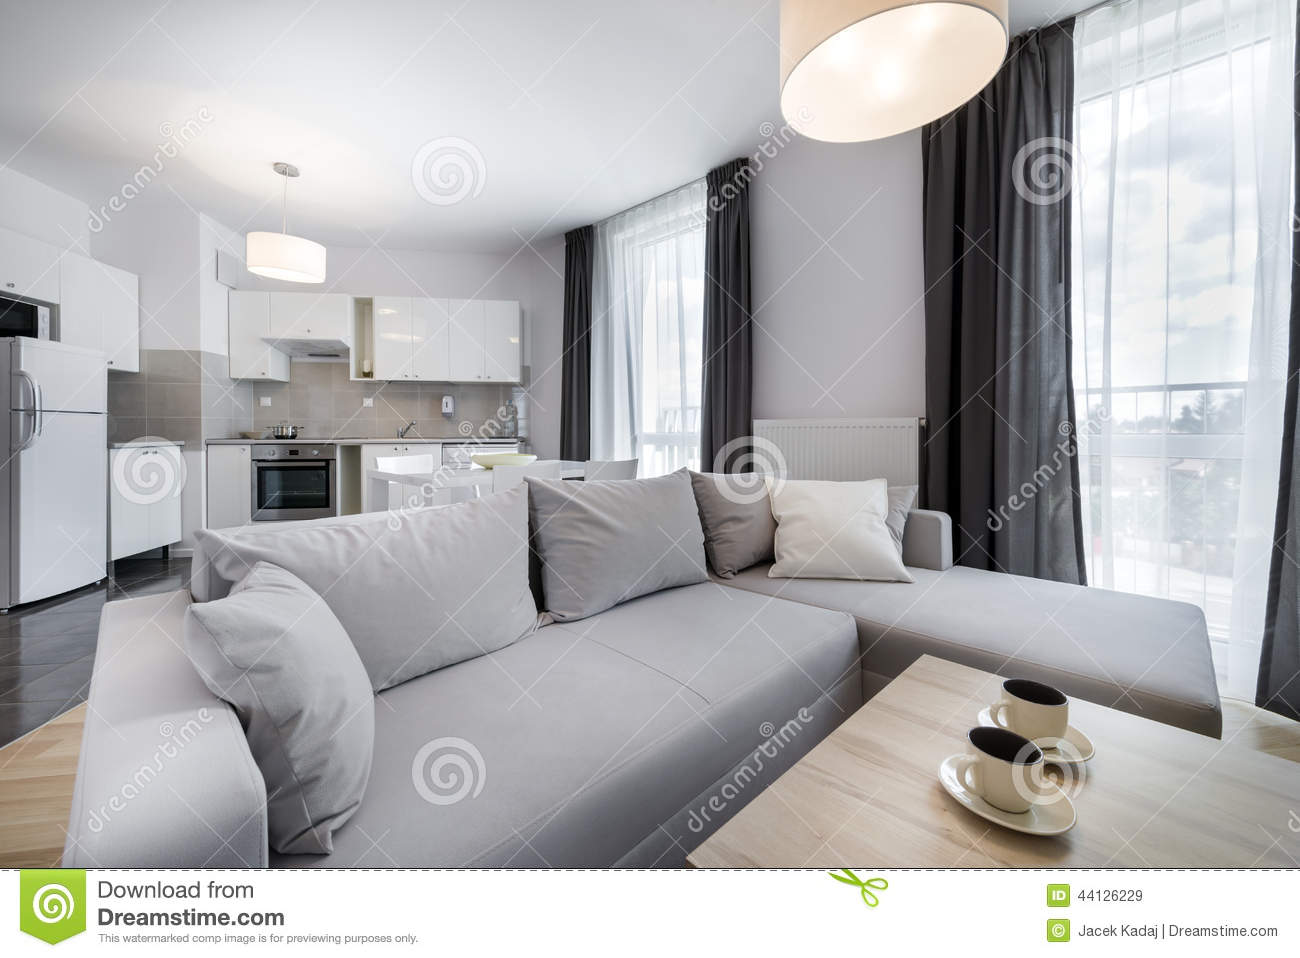 Stock Photo Modern Interior Design Living Room Scandinavian Style Open Space Image44126229 on Living Room Furniture Antique White